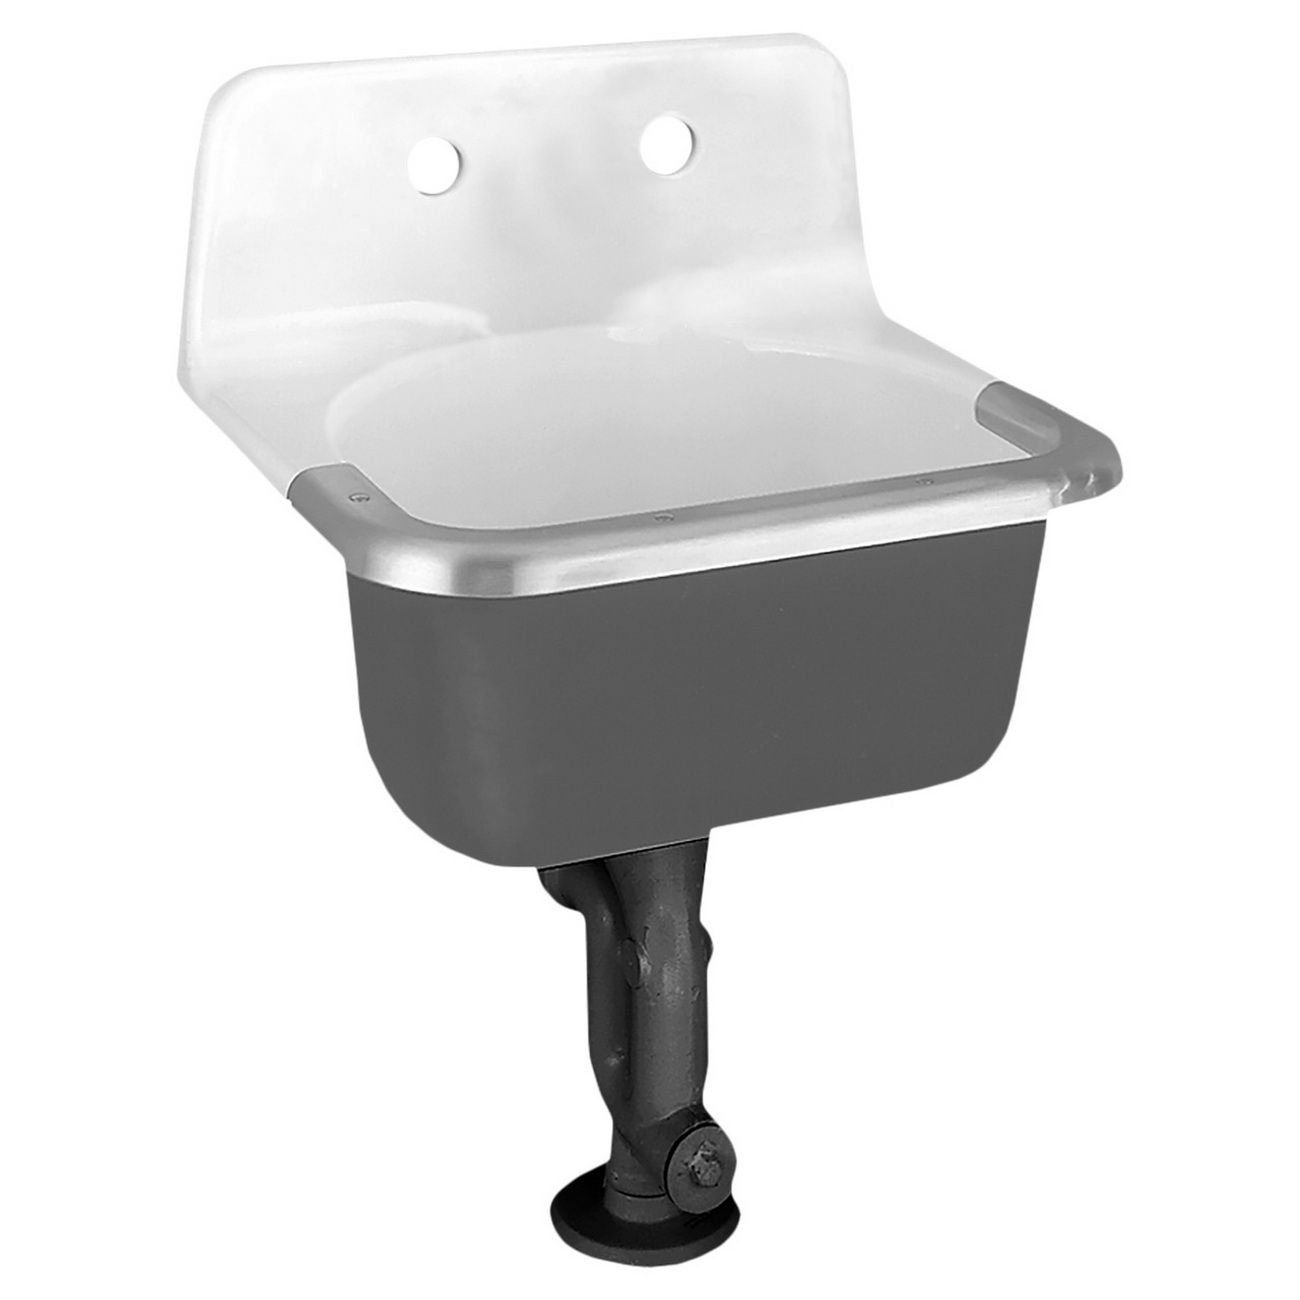 American Standard Lakewell™ 7692.008.020 White Enameled Cast Iron Wall Mount Service Sink with Plain Back and Rim Guard, 1-Bowl, 2-Faucet Holes